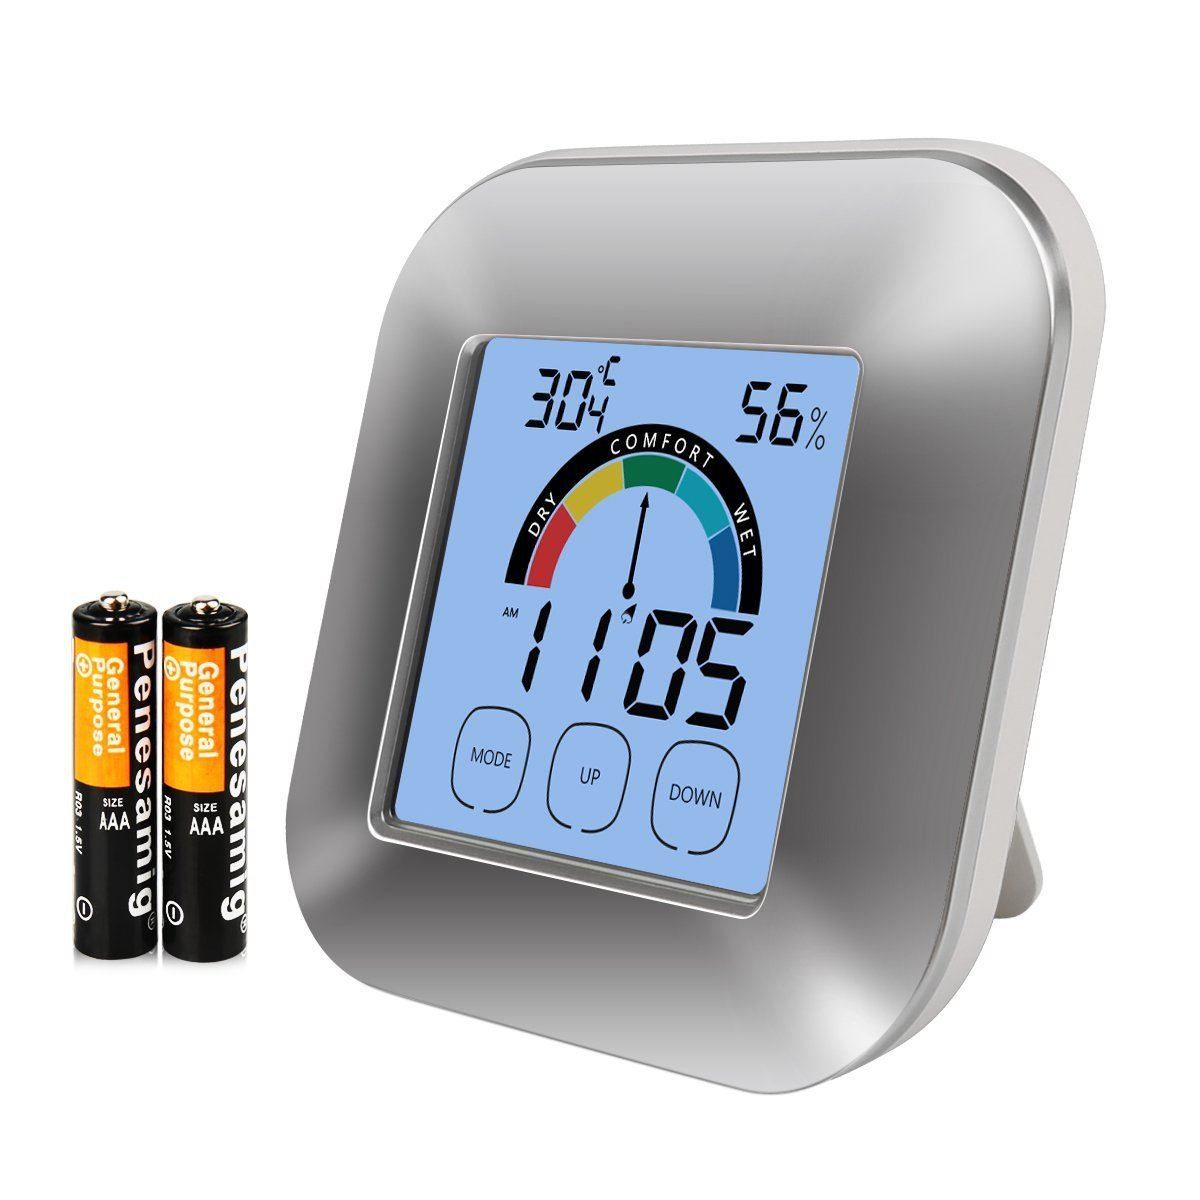 Digital Hygrometer Monitor Indoor Thermometer Accuracy Smart Humidity Temperature Gauge with Touchscreen Backlight Timer Alarm by YOMESTE